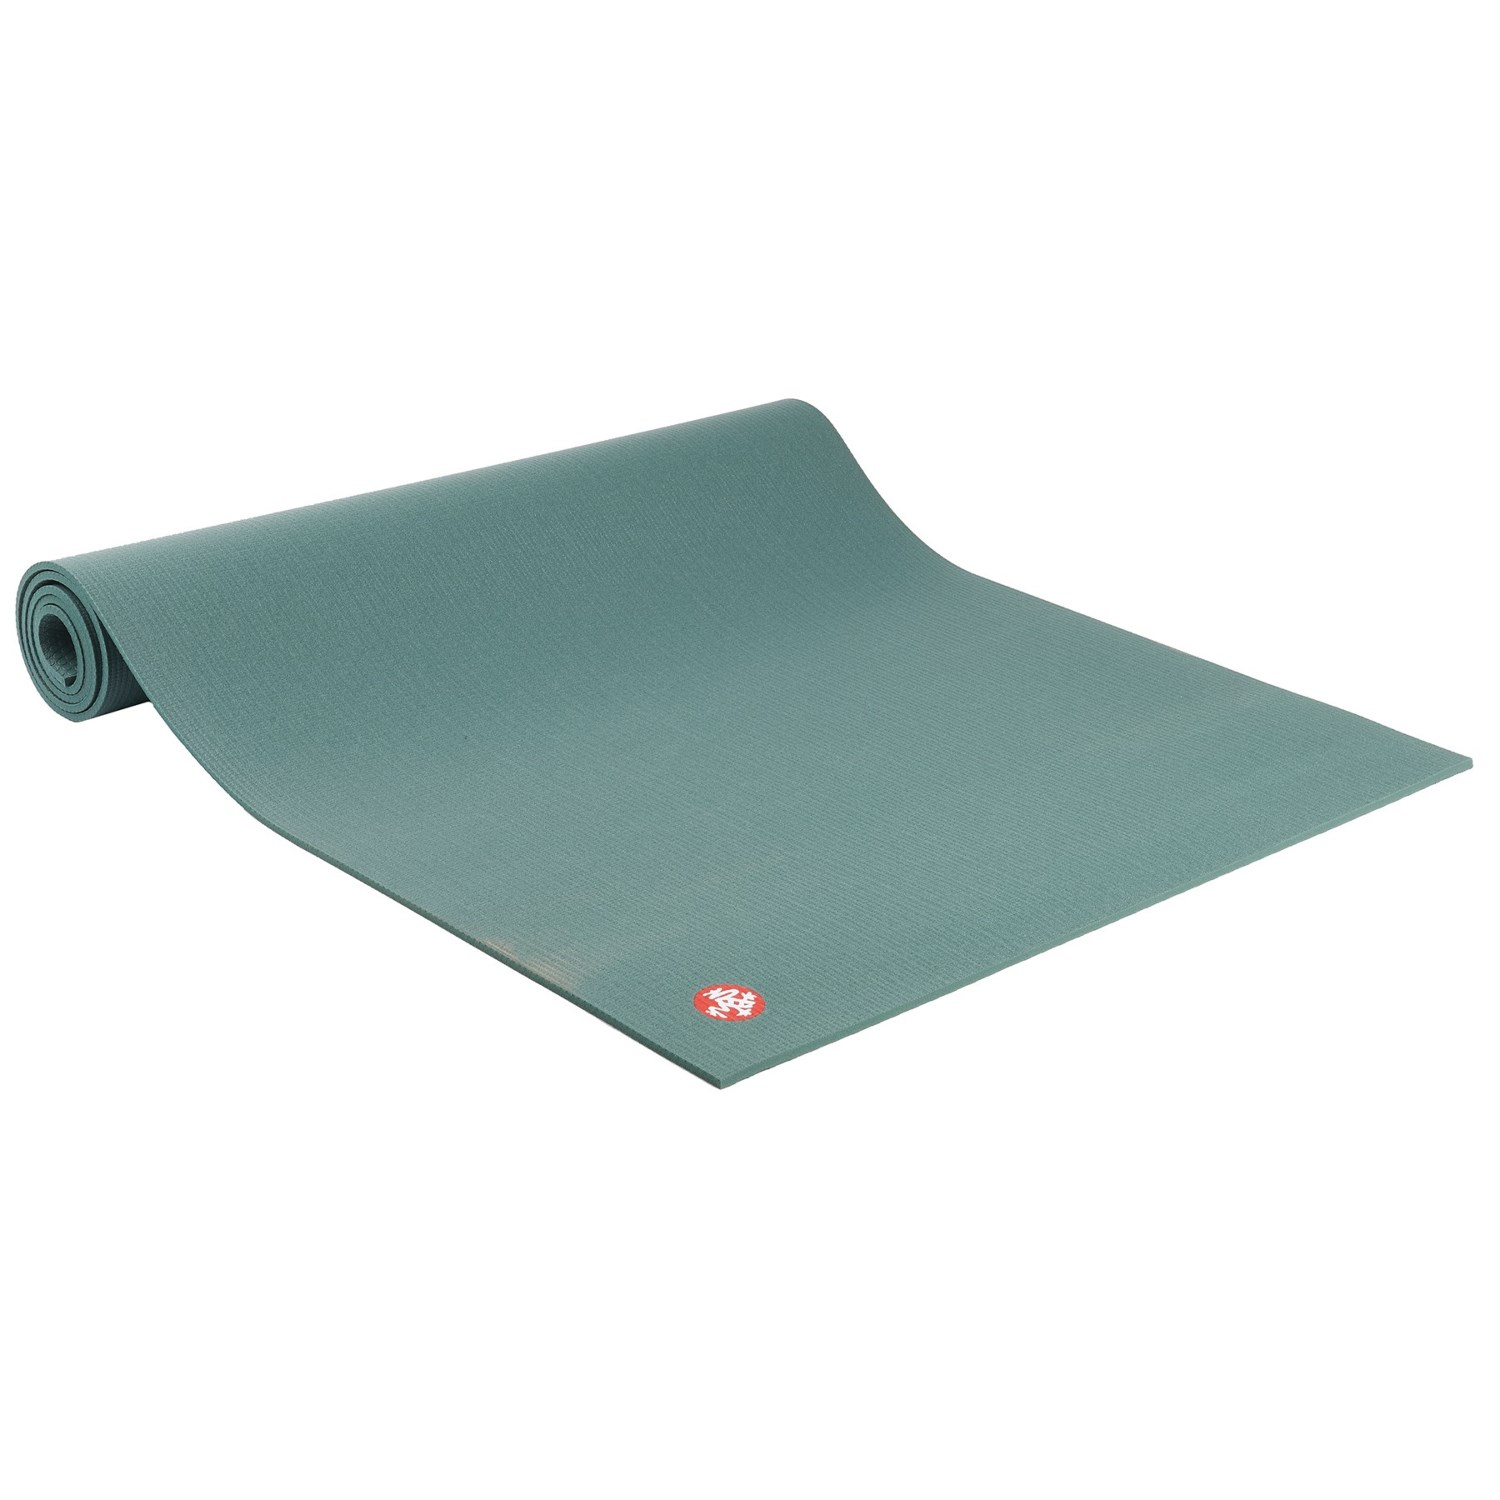 Manduka Made In Germany Almost Perfect Pro 6 Mm Yoga Mat 26x71 Save 33